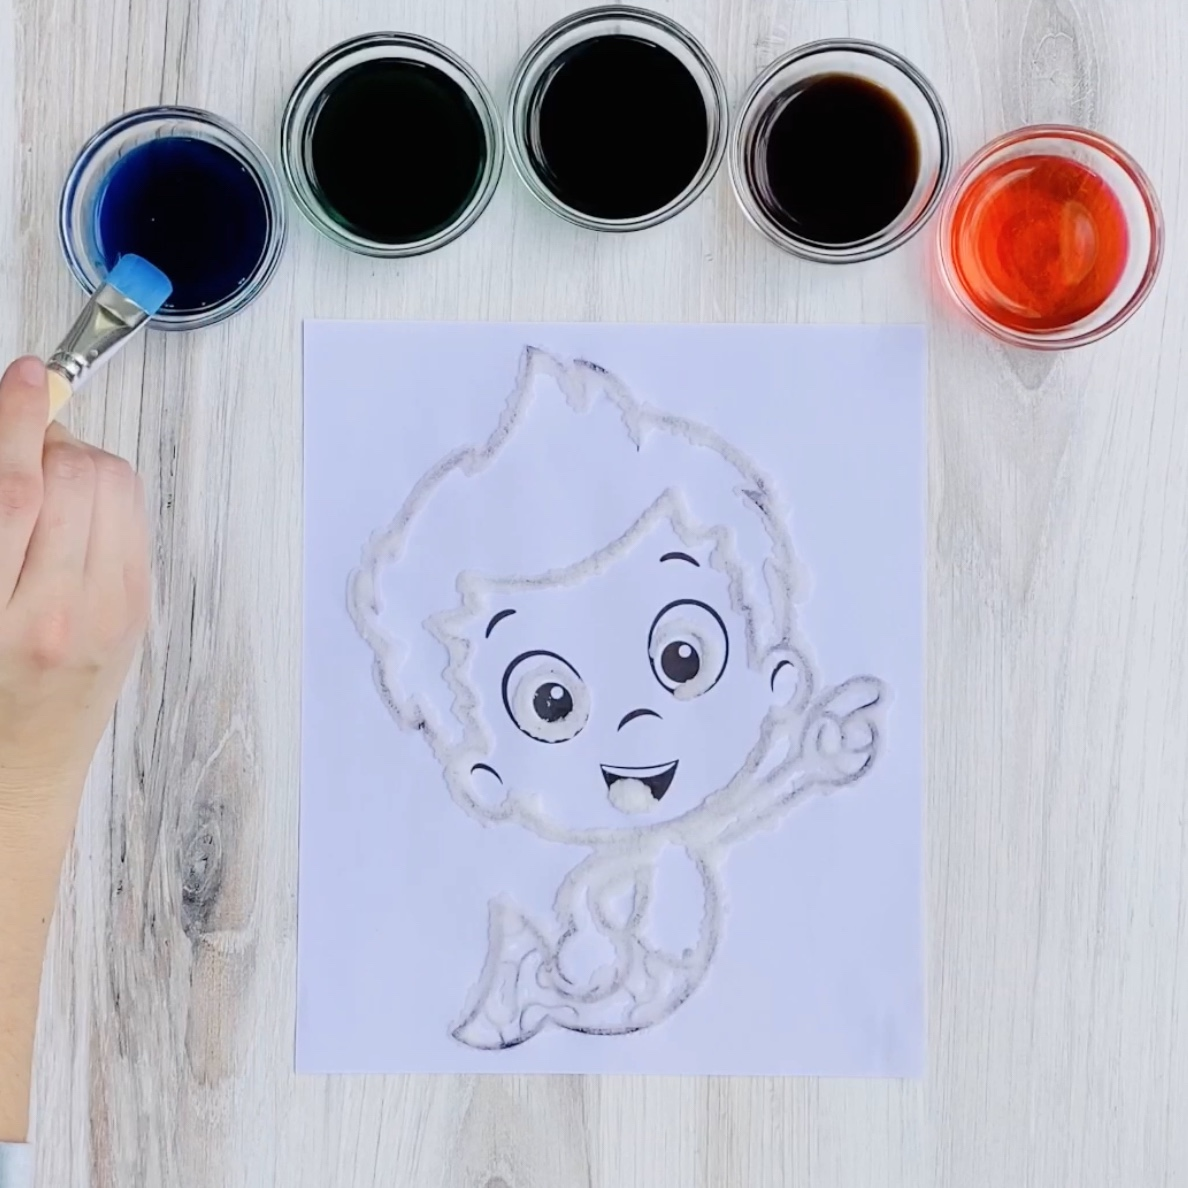 Bubble Guppies Salt Painting Step 4a